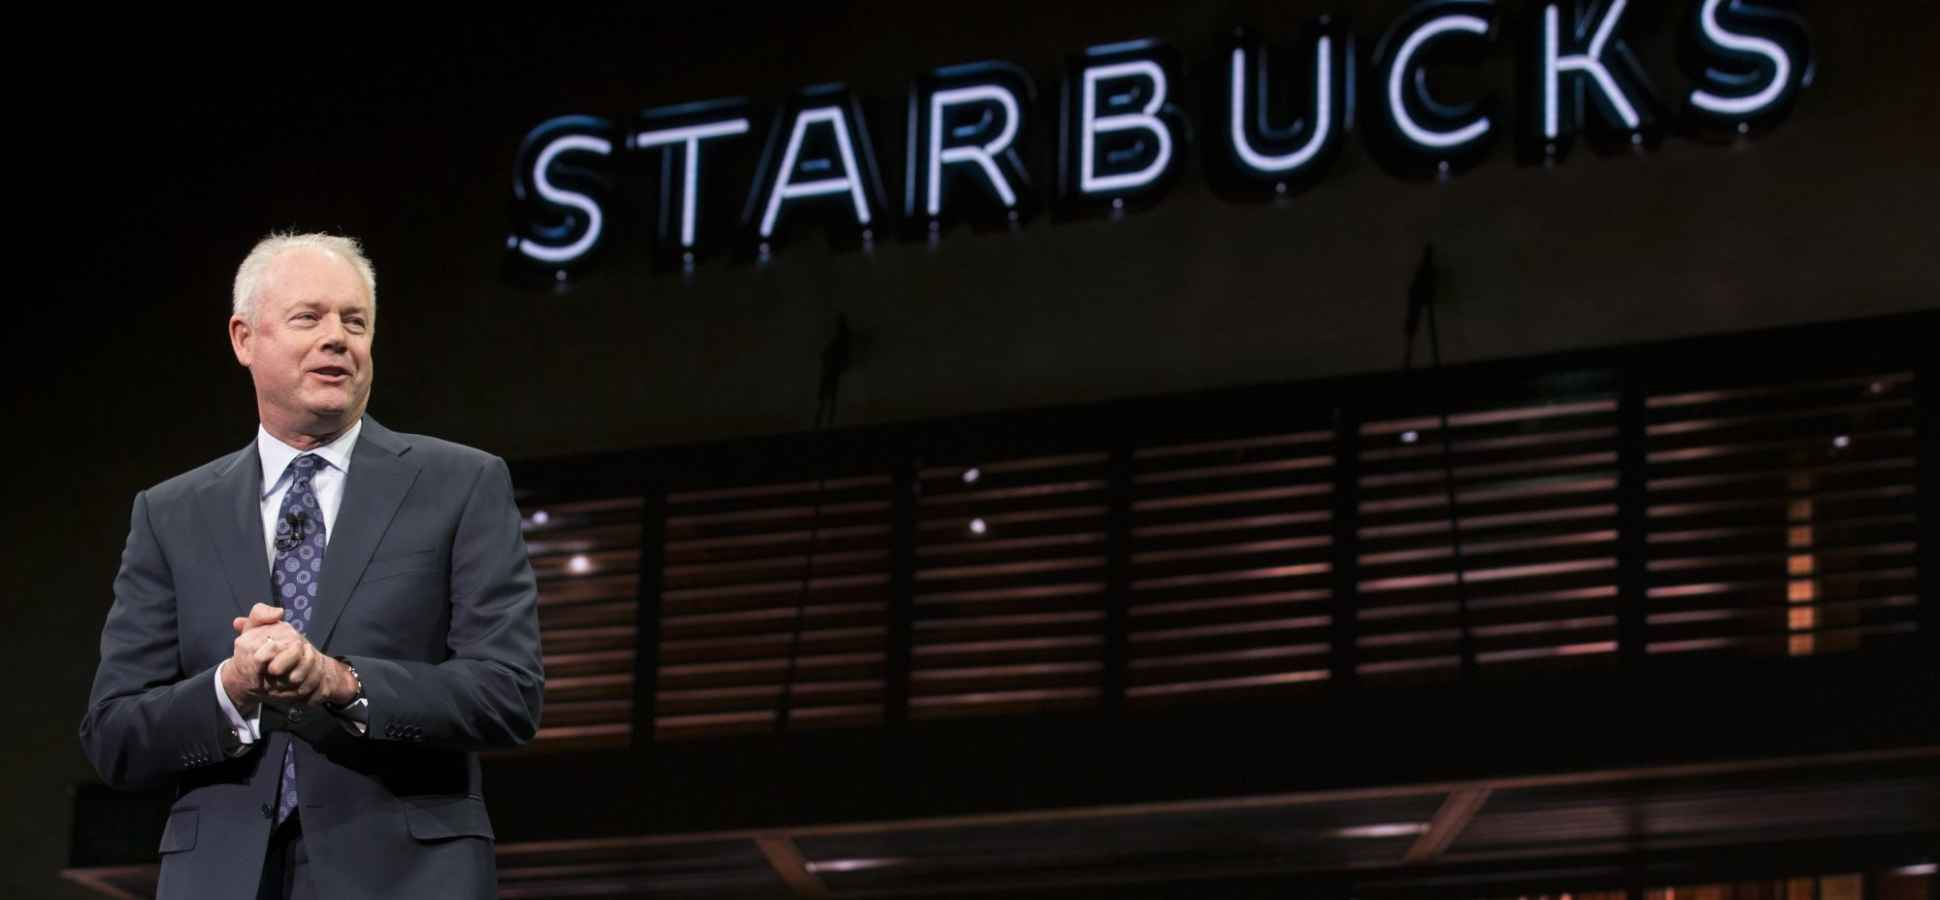 Starbucks Just Made a Major Decision That's Really Going to Annoy Some People